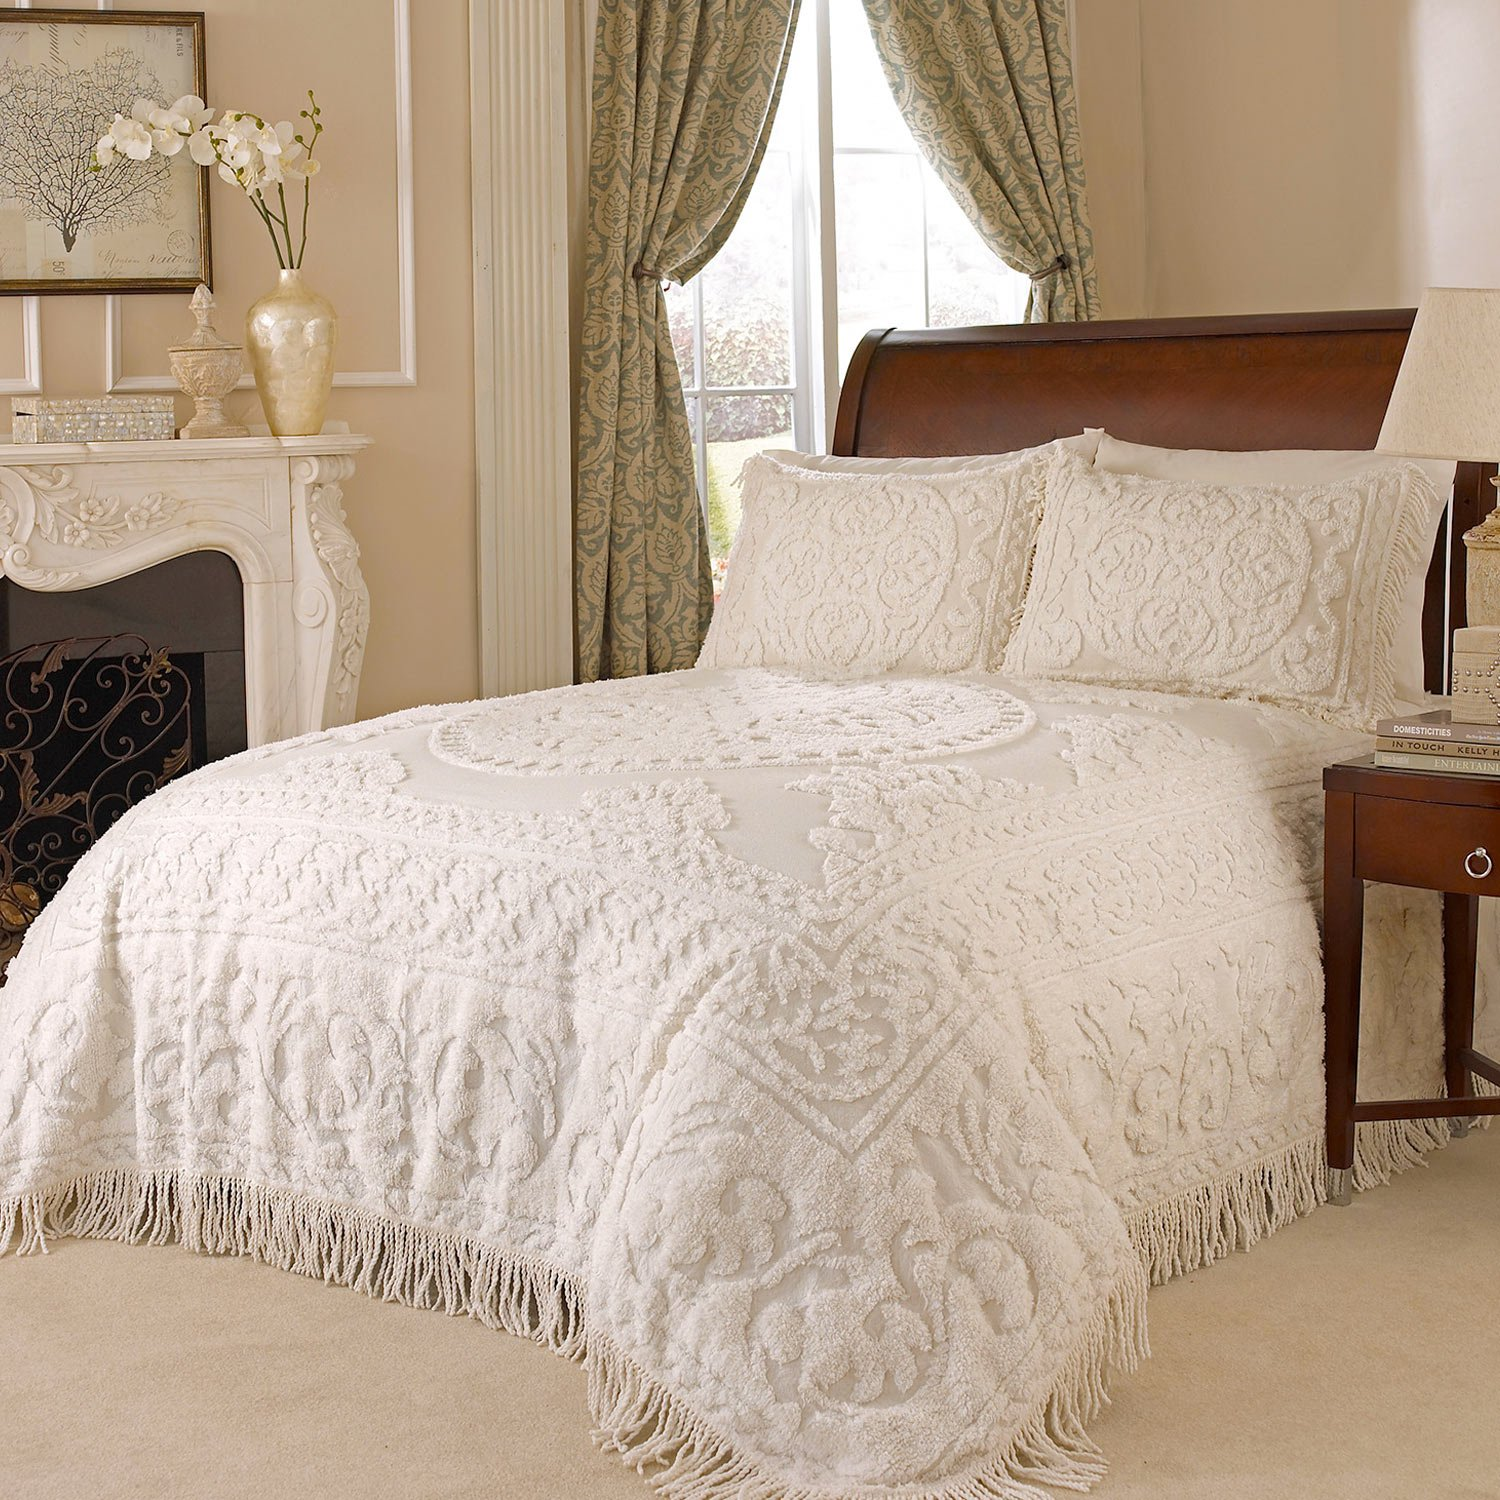 Beatrice Home Fashions Medallion Chenille Bedspread, King, Ivory by Beatrice Home Fashions